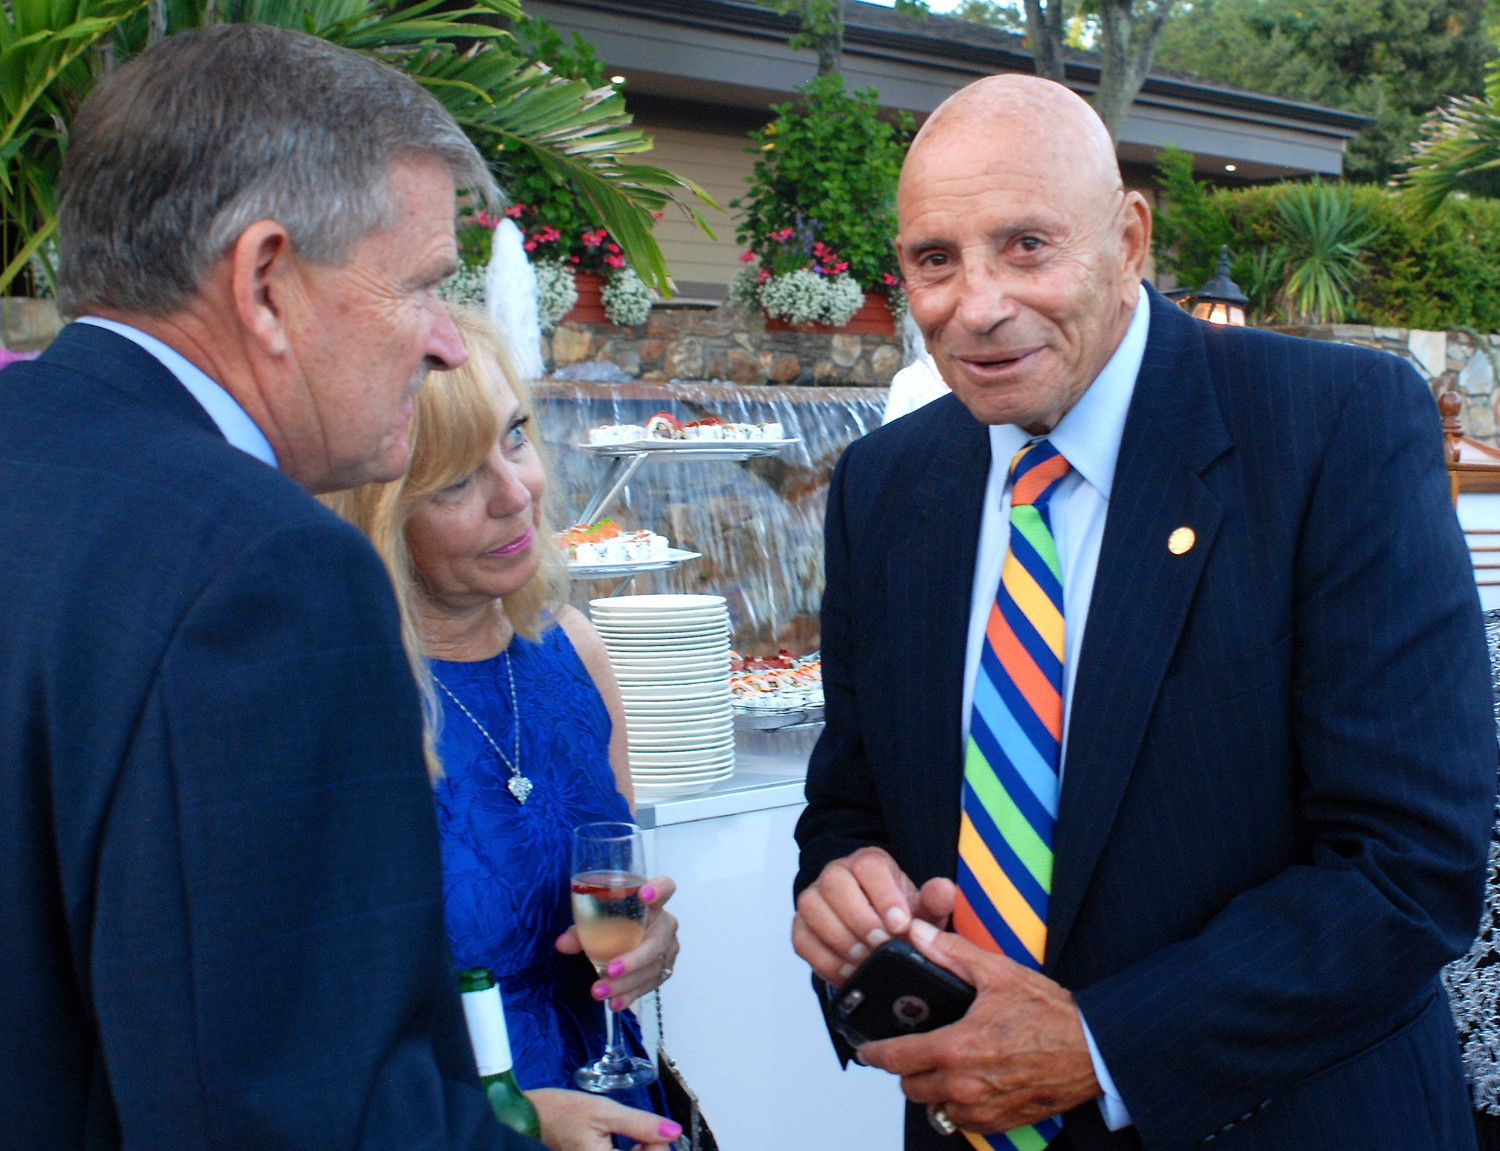 William Ulrich, left, vice president for administration, and his wife, Ethel, chatted with former New York State Assemblyman Harvey Weisenberg, of Long Beach.